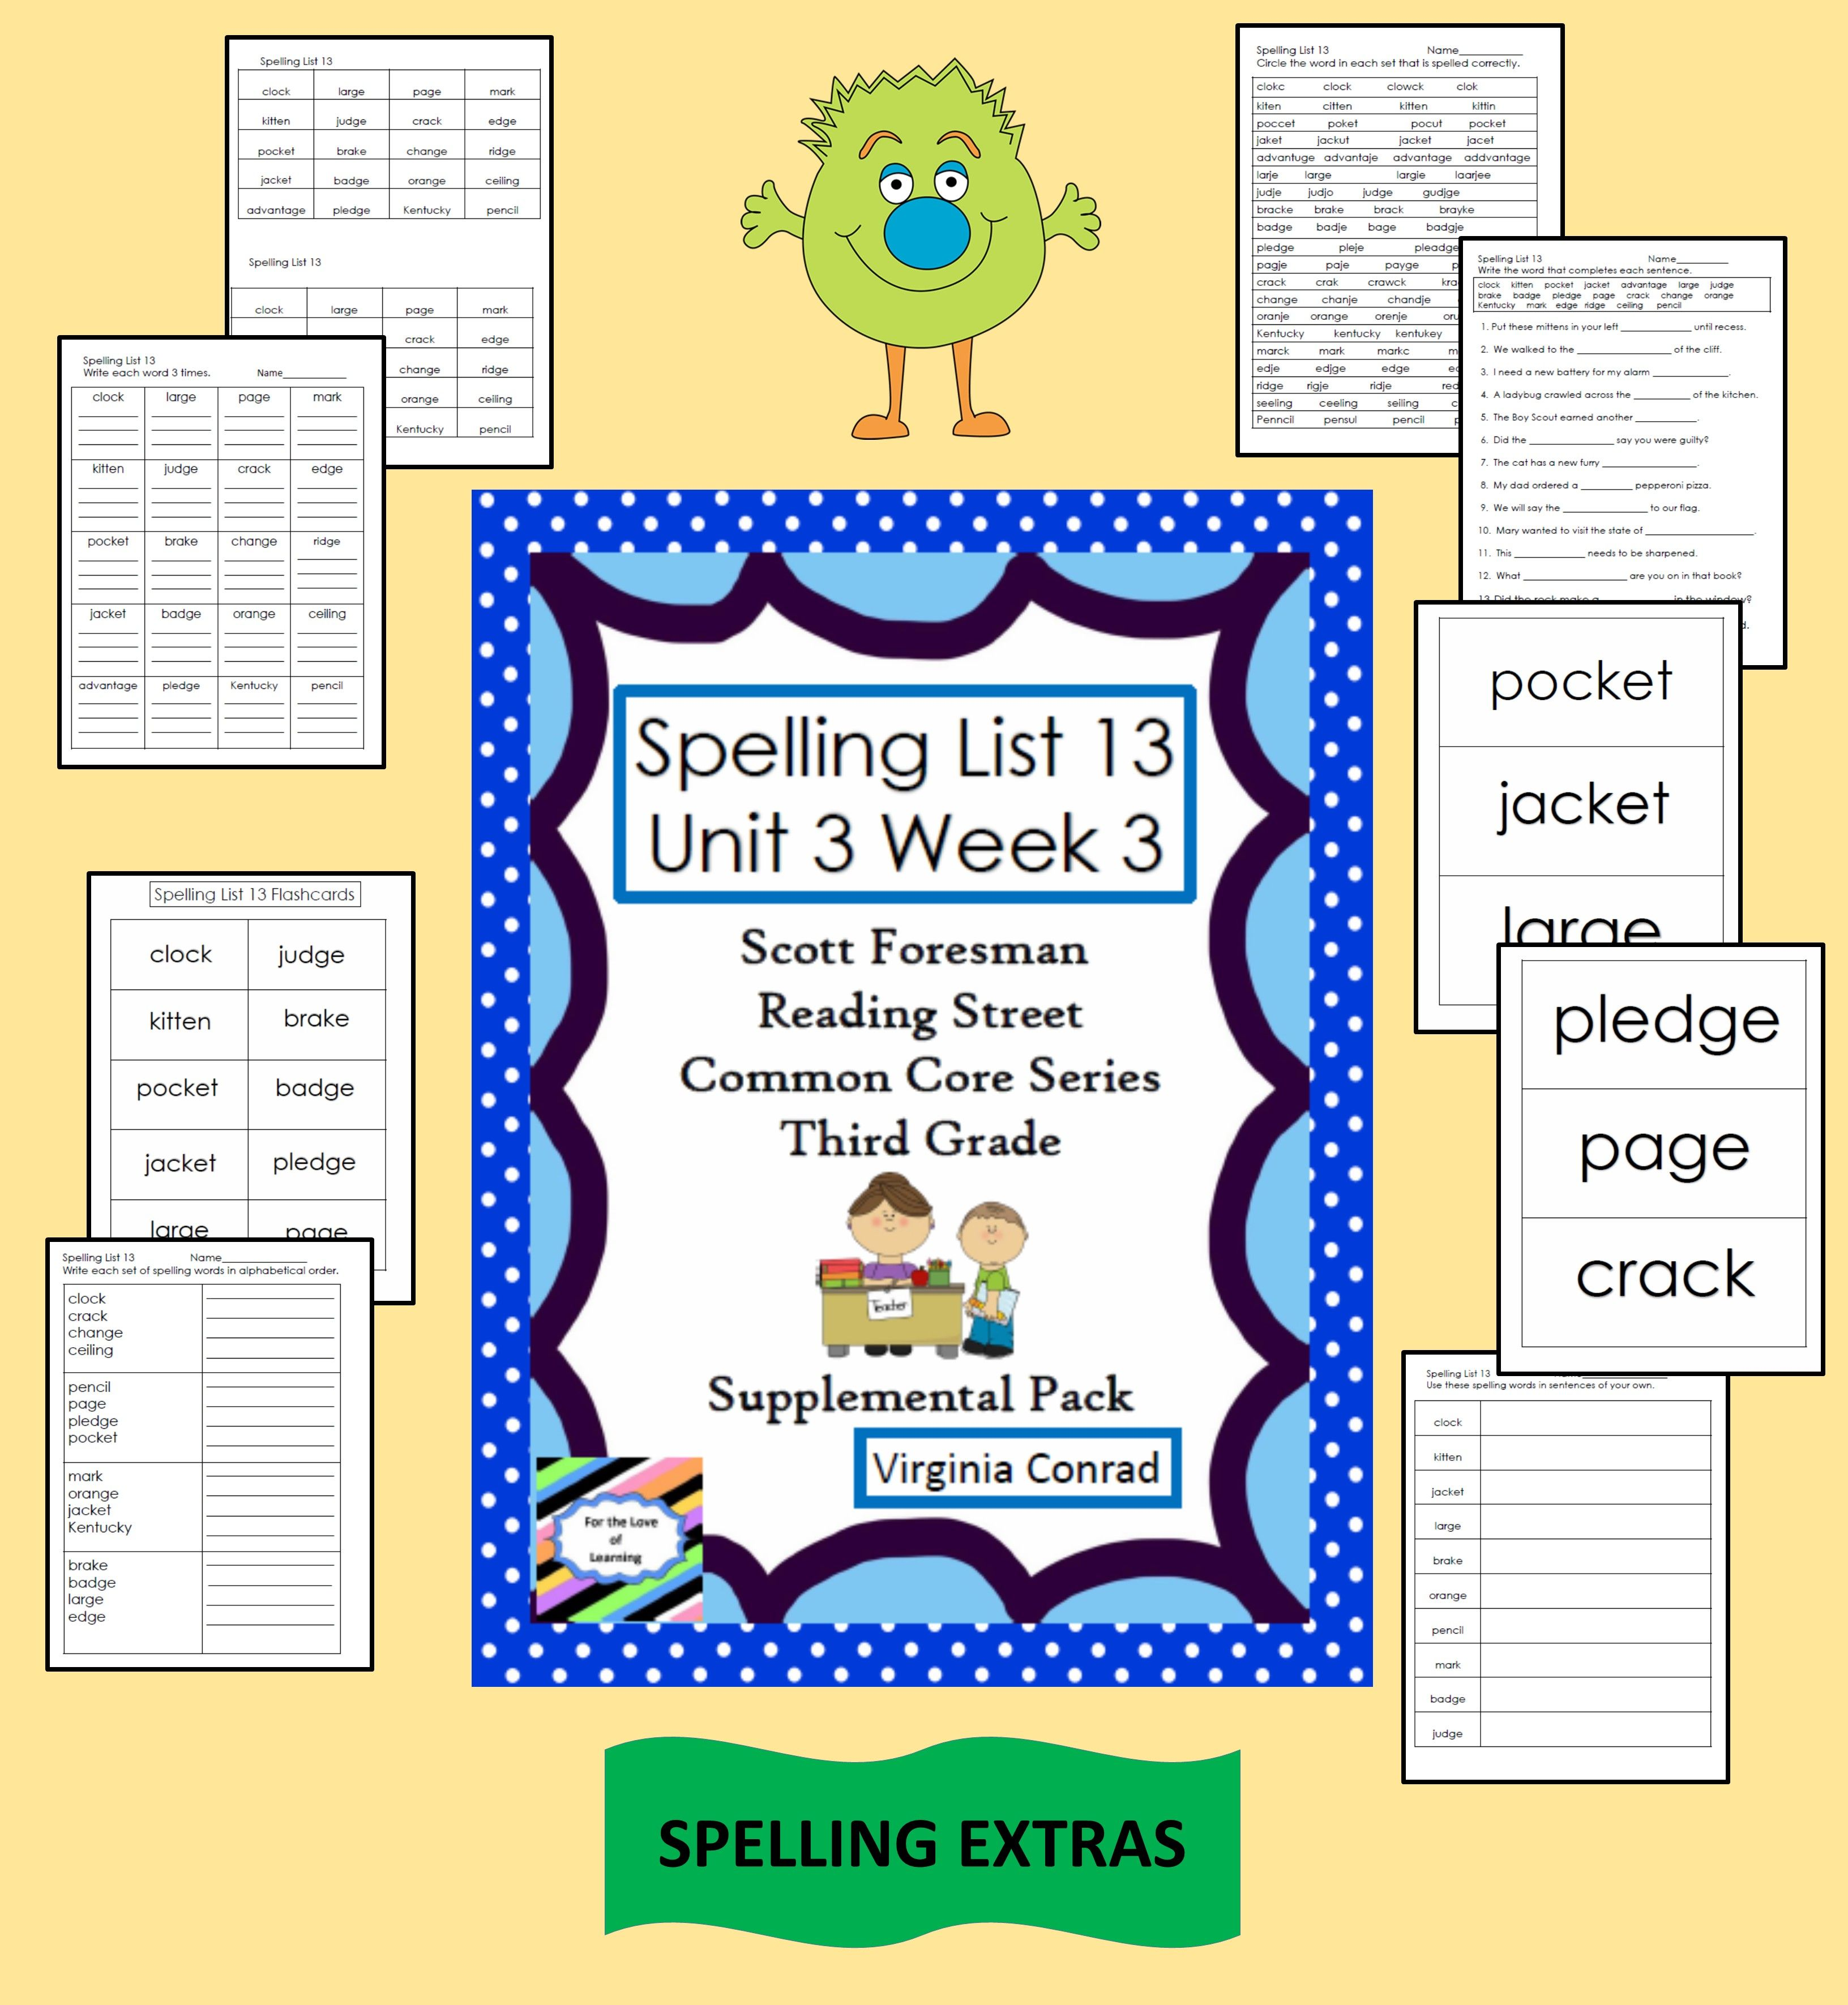 Supplemental Materials For Spelling List 13 In The Reading